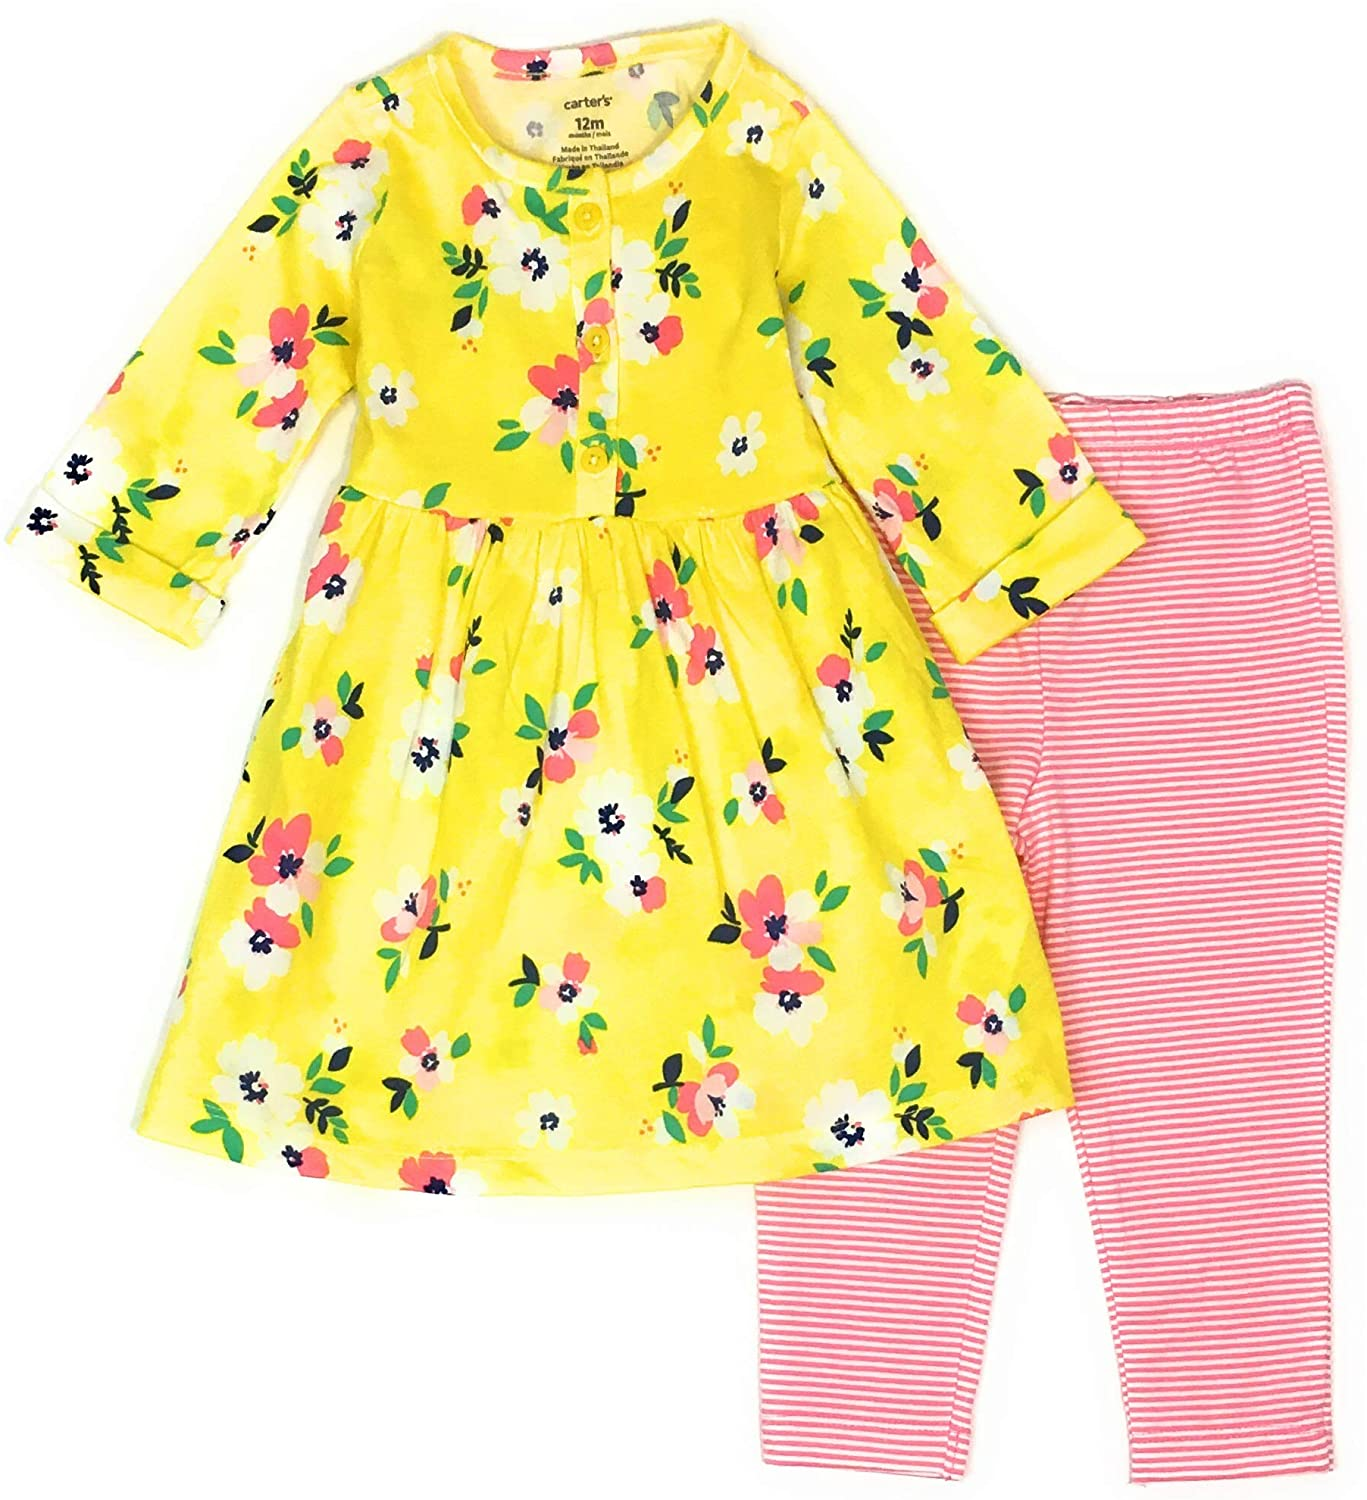 Carter's Baby Girls 2-Piece Dress with Legging Set (3 Months, Yellow/Pink Floral)